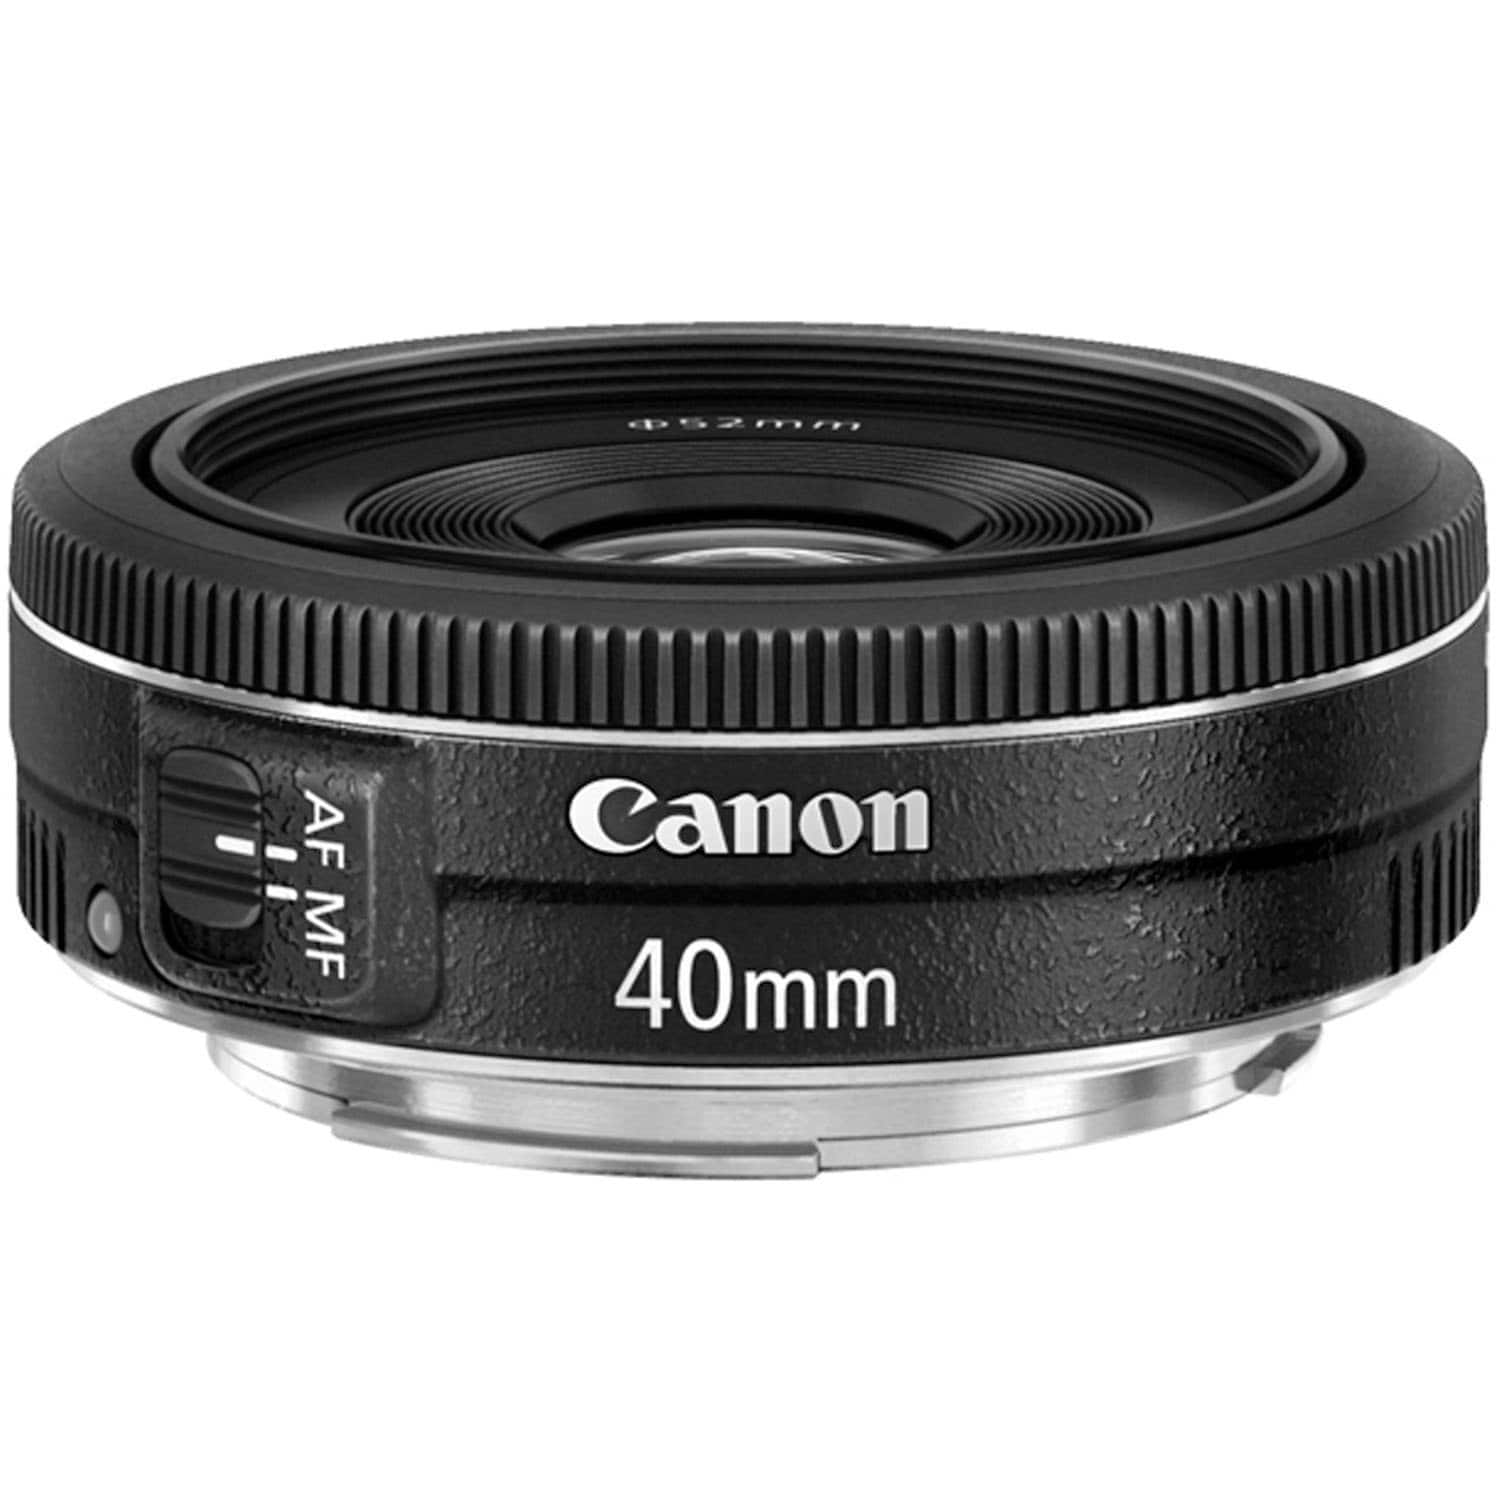 Canon EF 40mm f/2.8 STM Lens (Refurb) + Adhesive Photo Strip  $102 + Free S/H